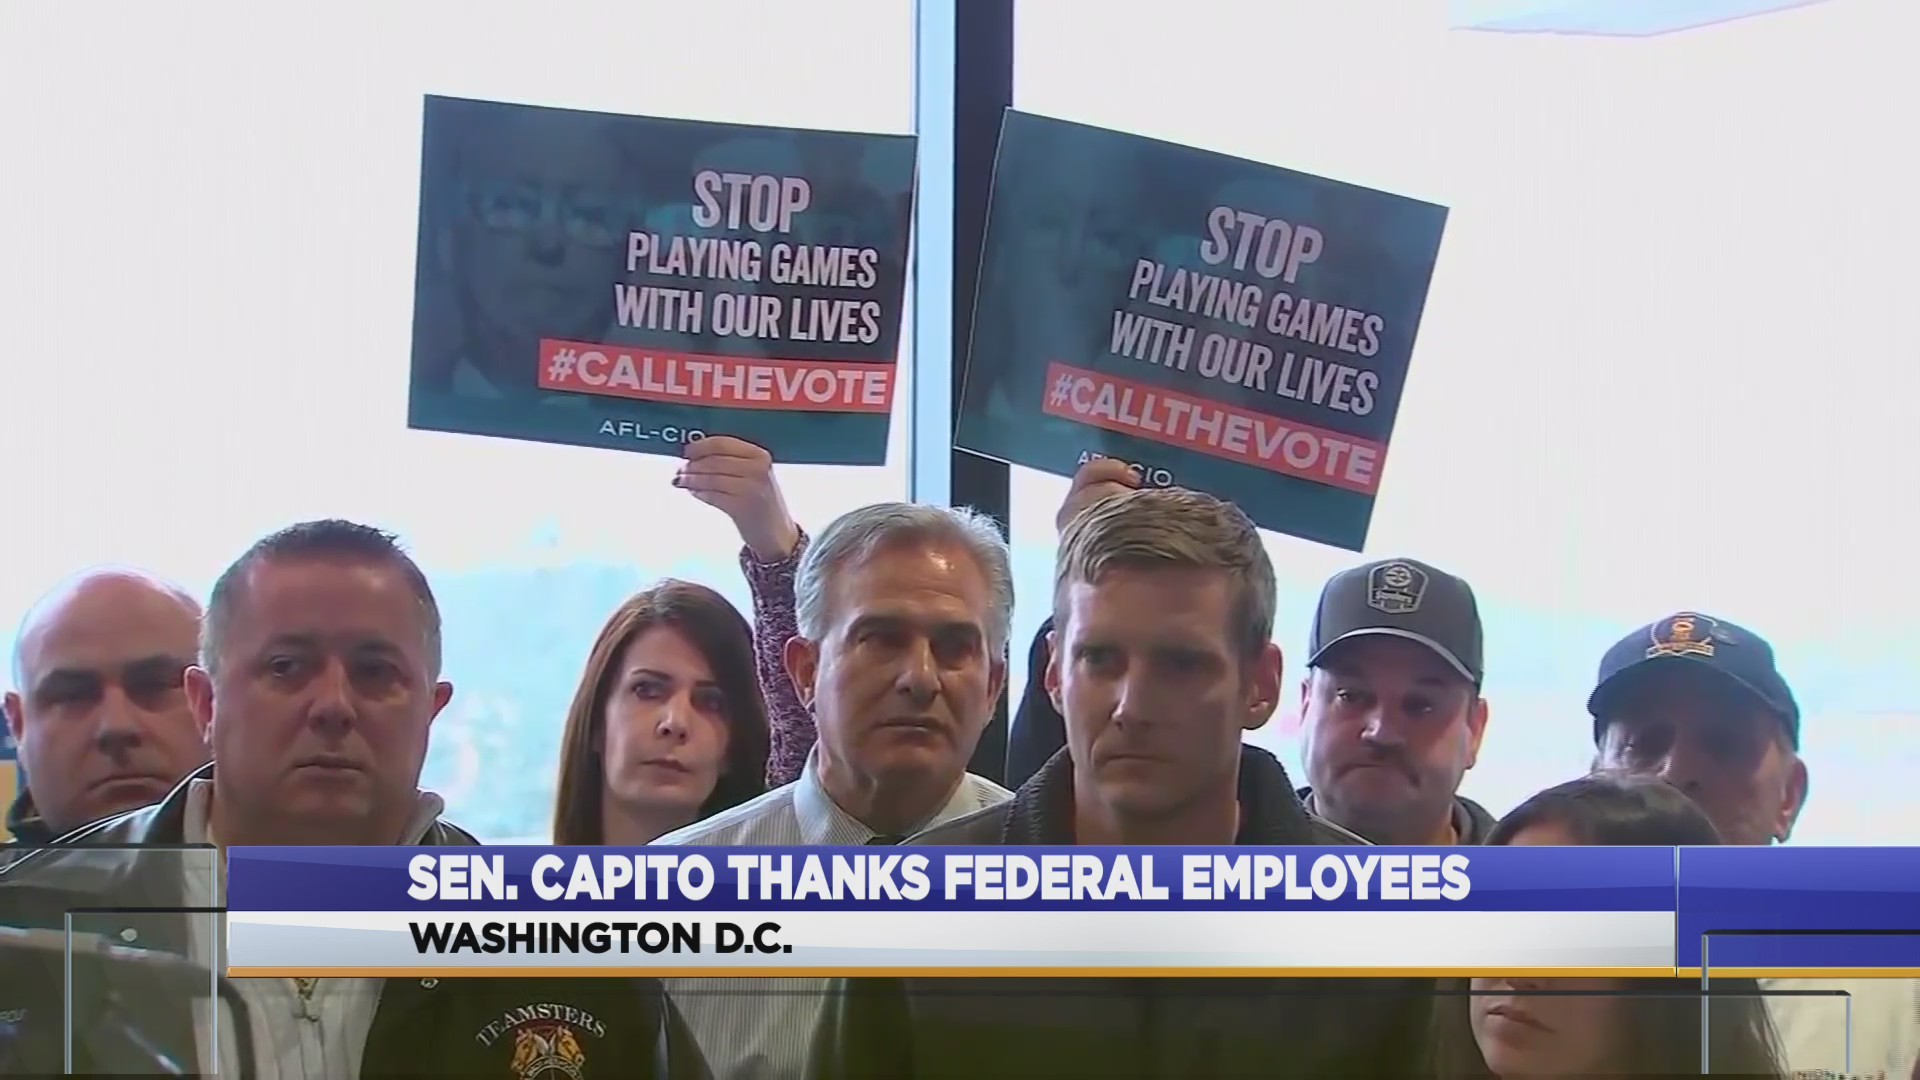 Capito_message_to_federal_employees_0_20190201230813